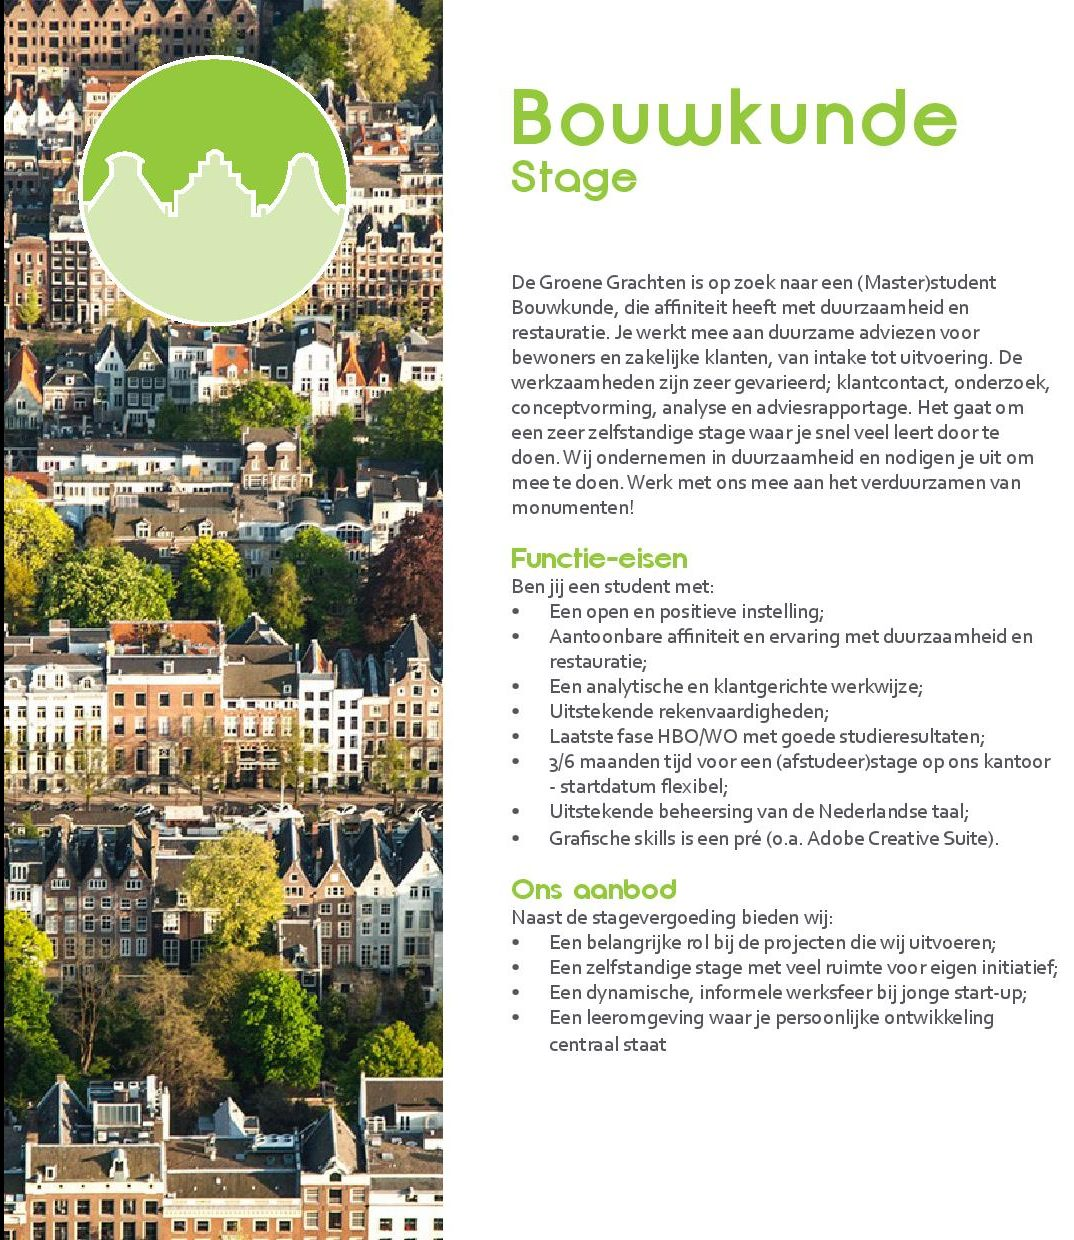 Stage-vacature-bouwkunde-DGG-1-page-001